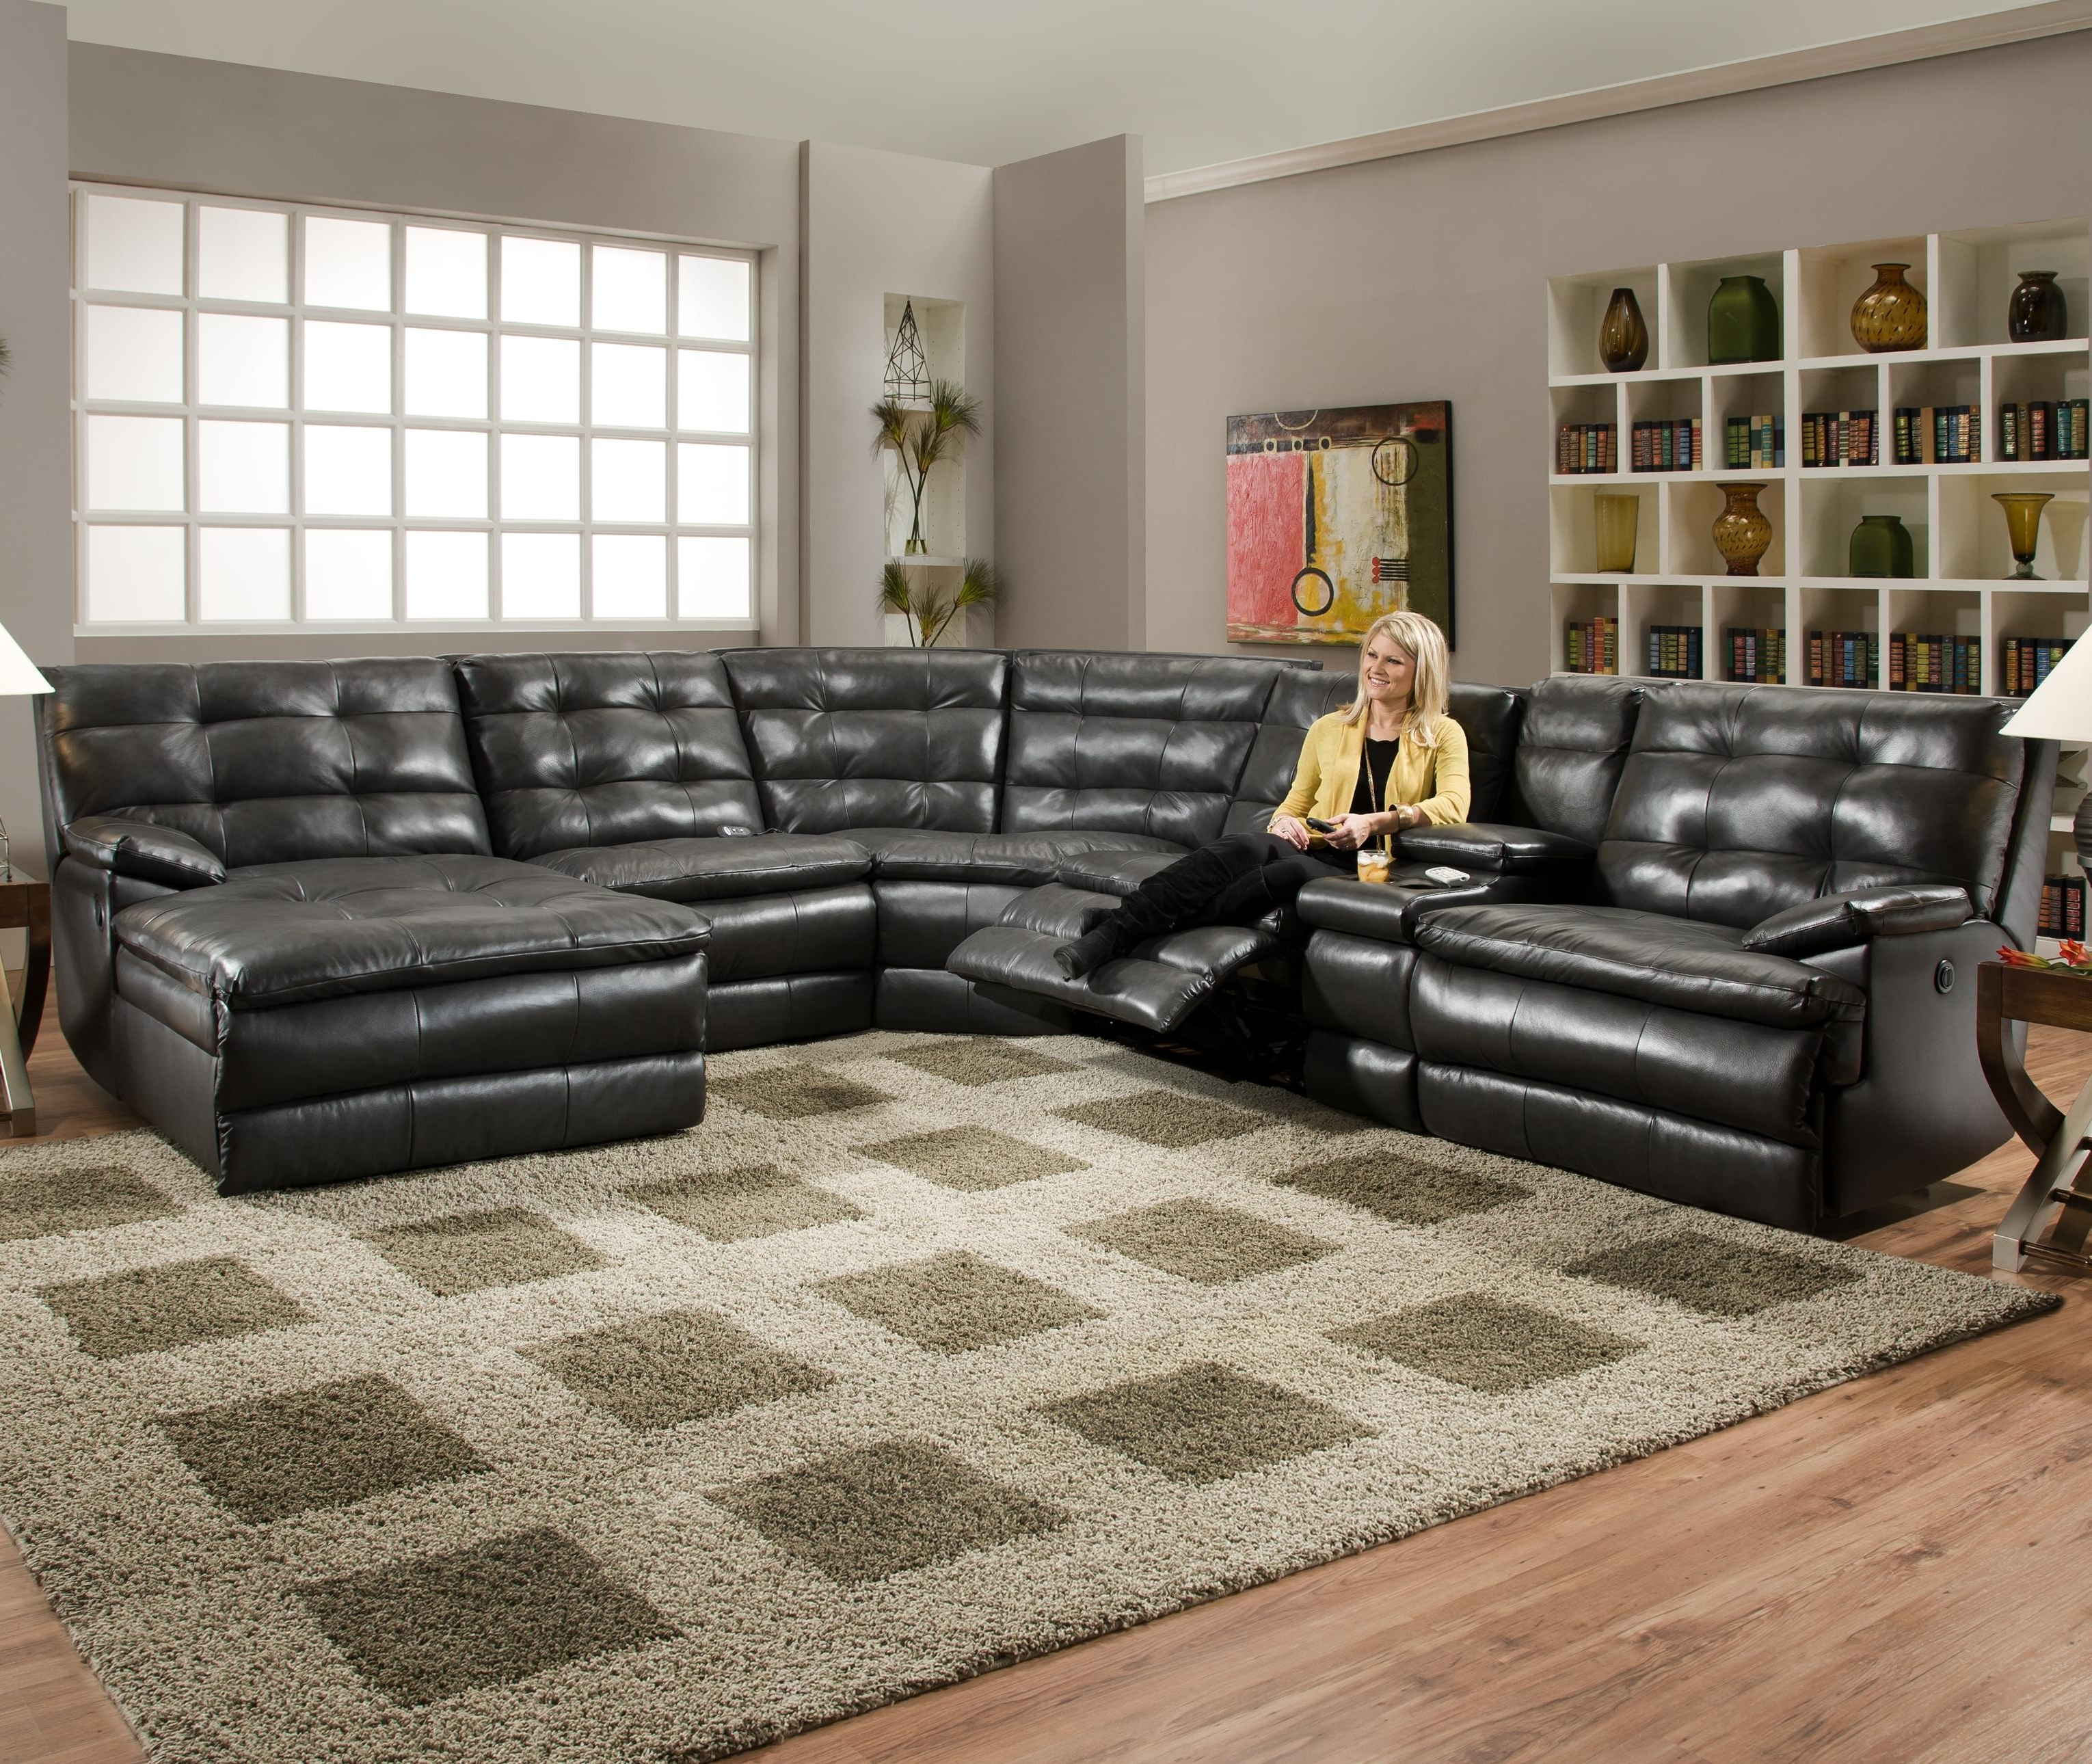 Best And Newest Deep Cushion Sofas Intended For Oversized Furniture Wide Couches Large Sectional Sofas Long Sofas (View 17 of 20)